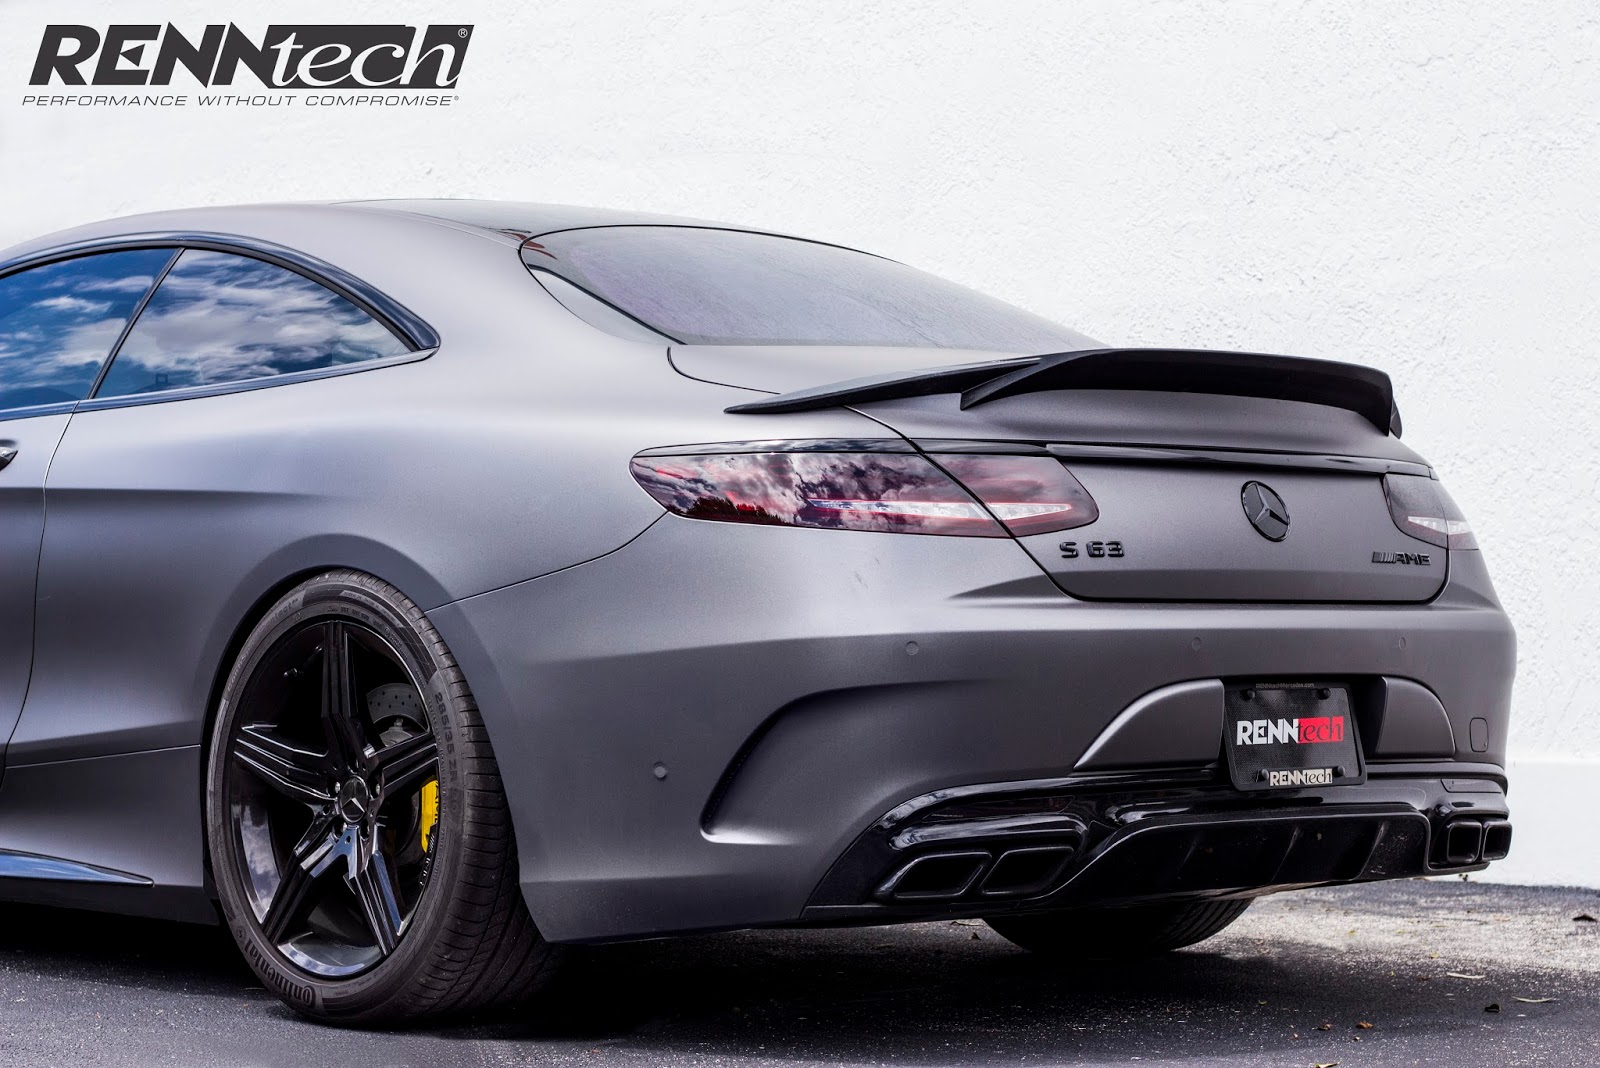 Mercedes Benz C217 S63 Amg Coupe By Renntech Benztuning